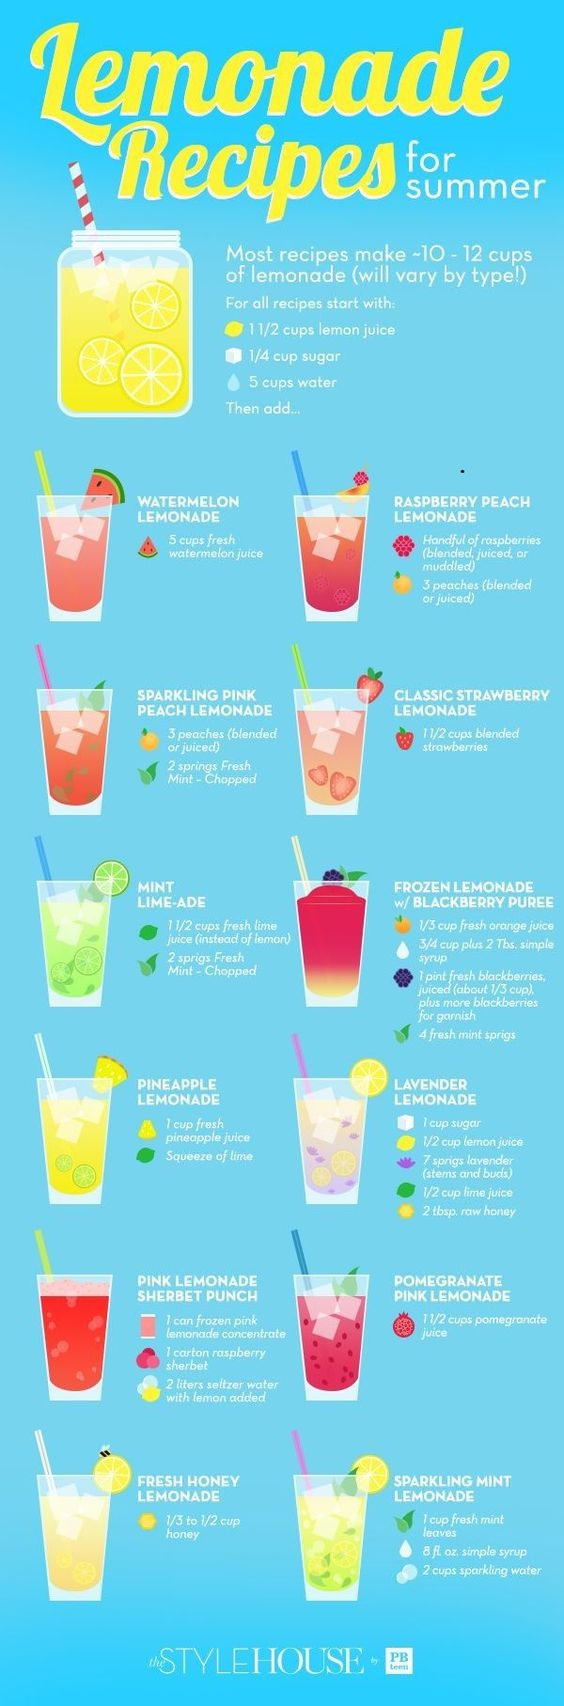 Lemonade recipes for summer.  #Healthy #Beverages #CleanEating Sherman Financial Group: